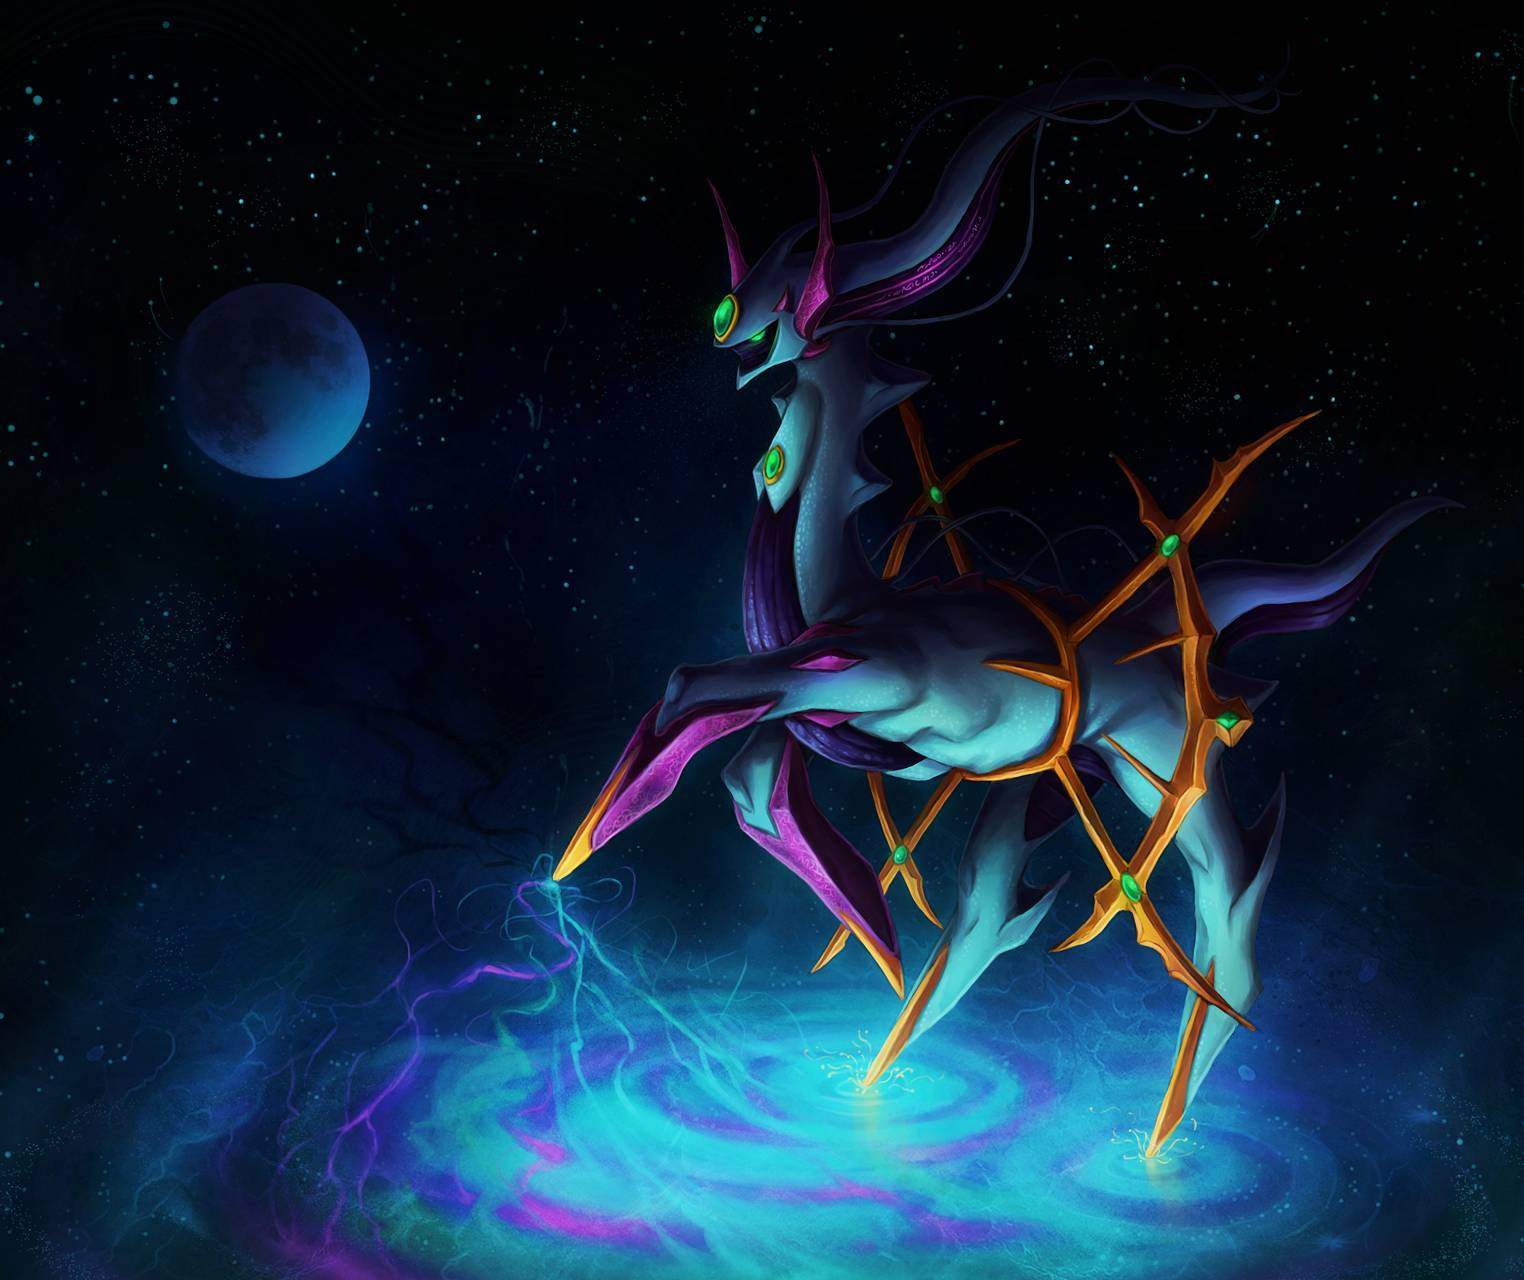 Arceus Wallpaper by kobyxiong23 - 79 - Free on ZEDGE™